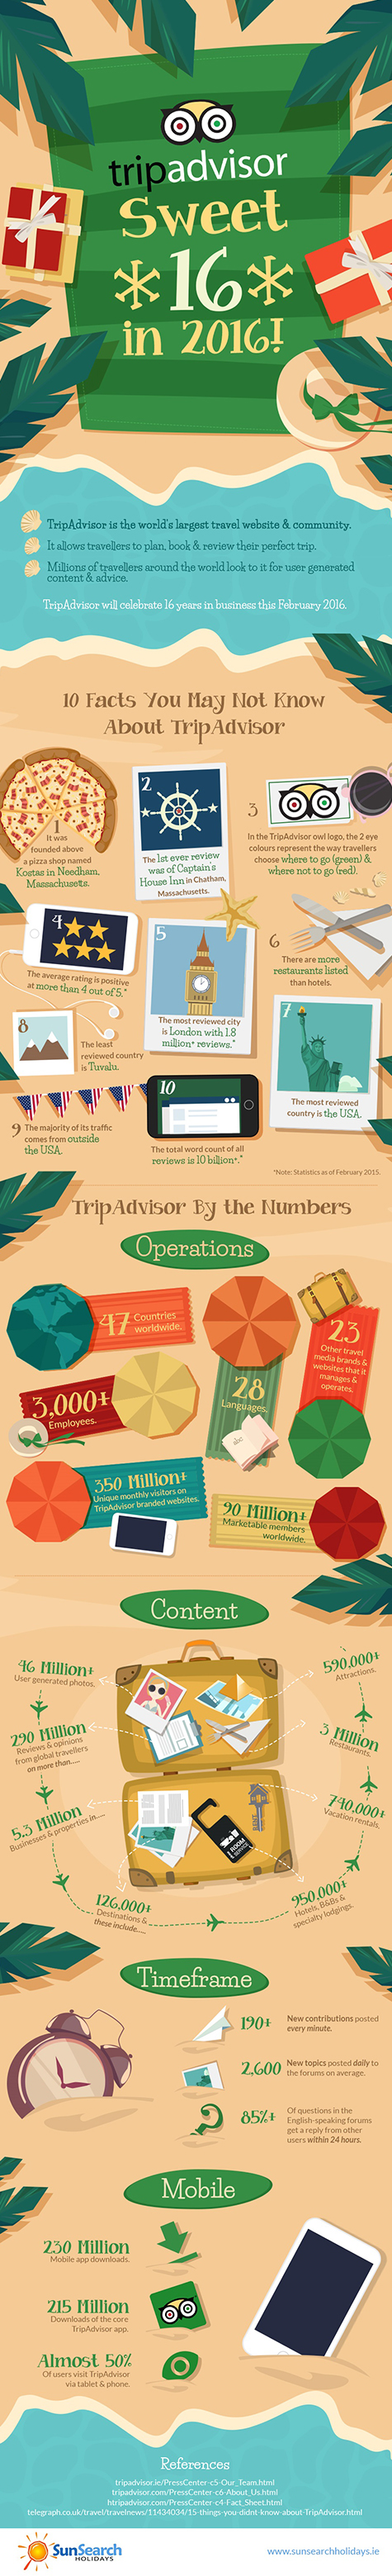 1855 475w Take a Trip Through the 16 Year Success of TripAdvisor